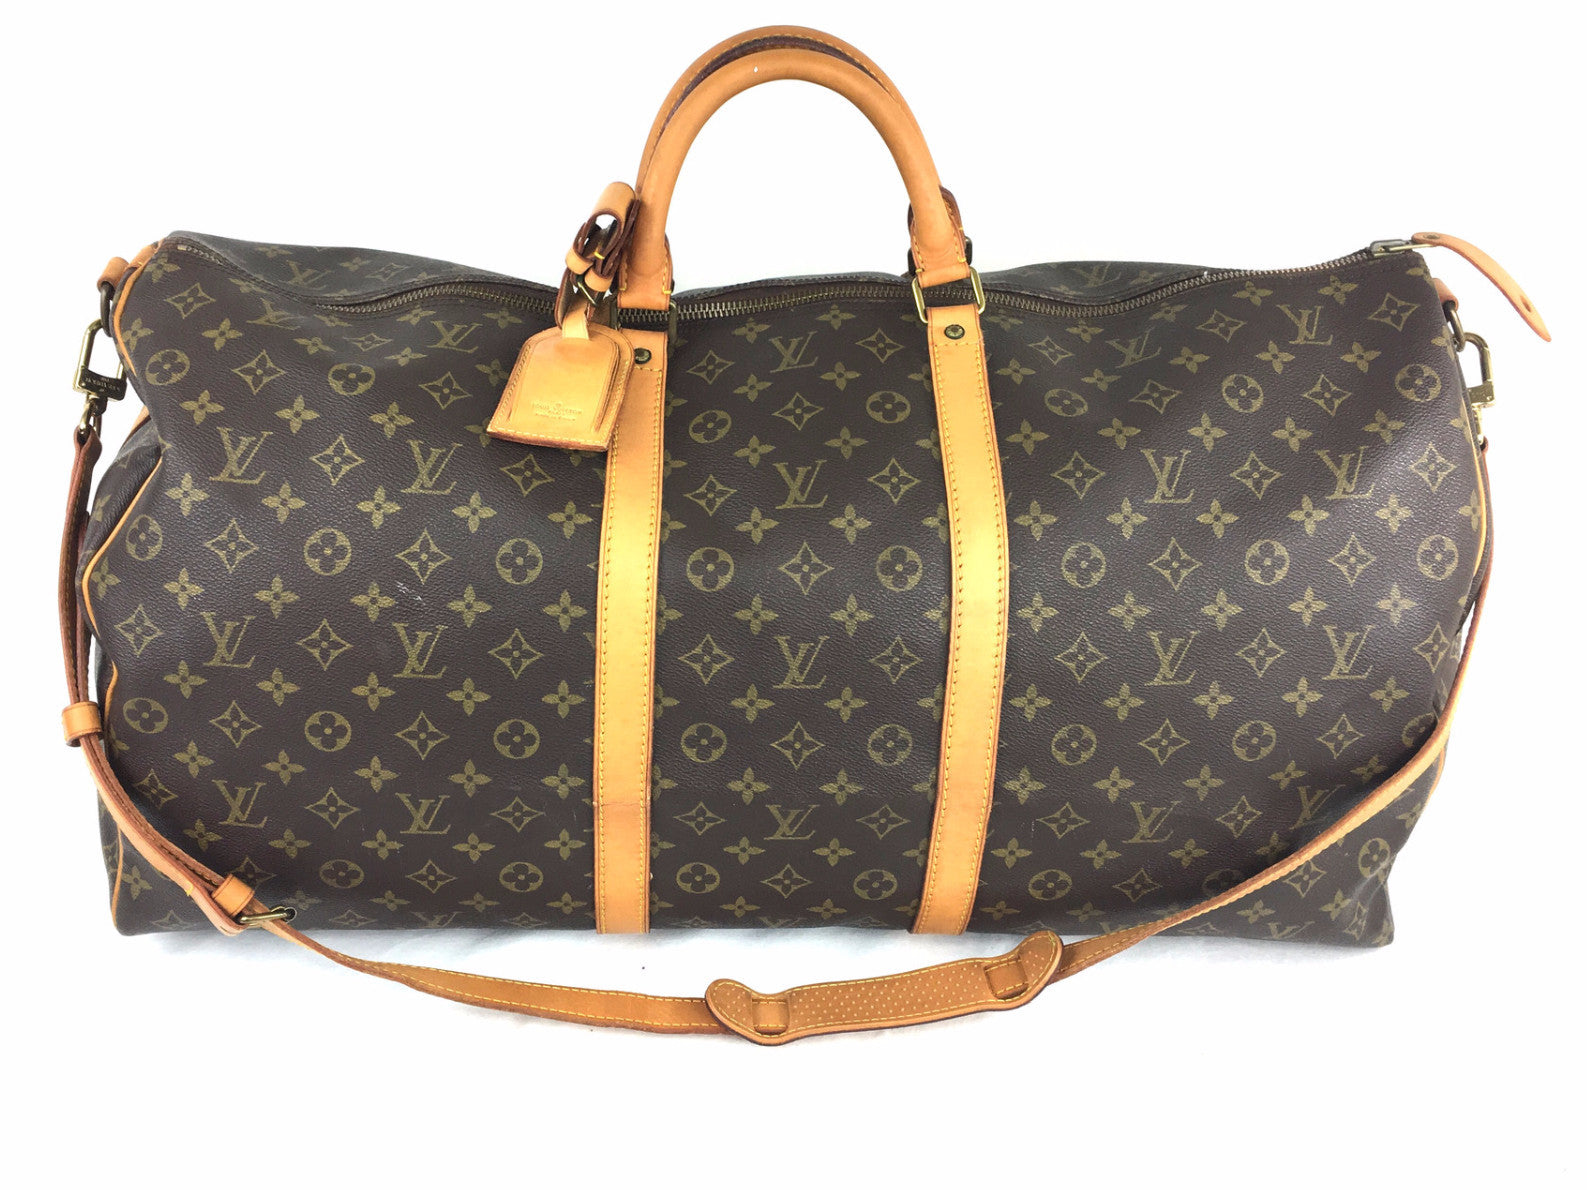 LOUIS VUITTON Monogram Keepall Bandouliere 60 Duffel Bag